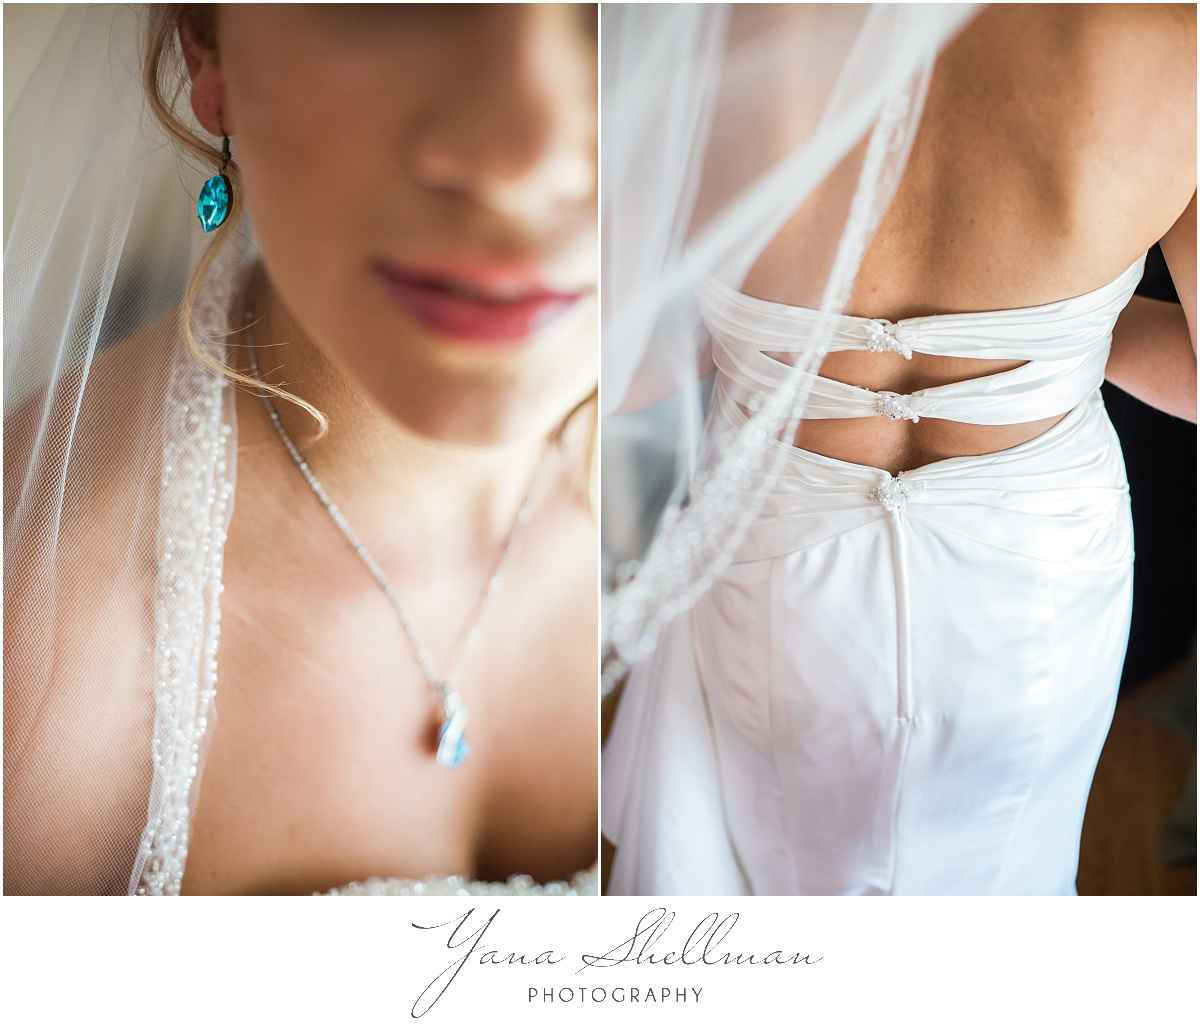 ciros-ristorante-italiano-wedding-photos-by-philadelphia-wedding-photographer-christinanick-wedding